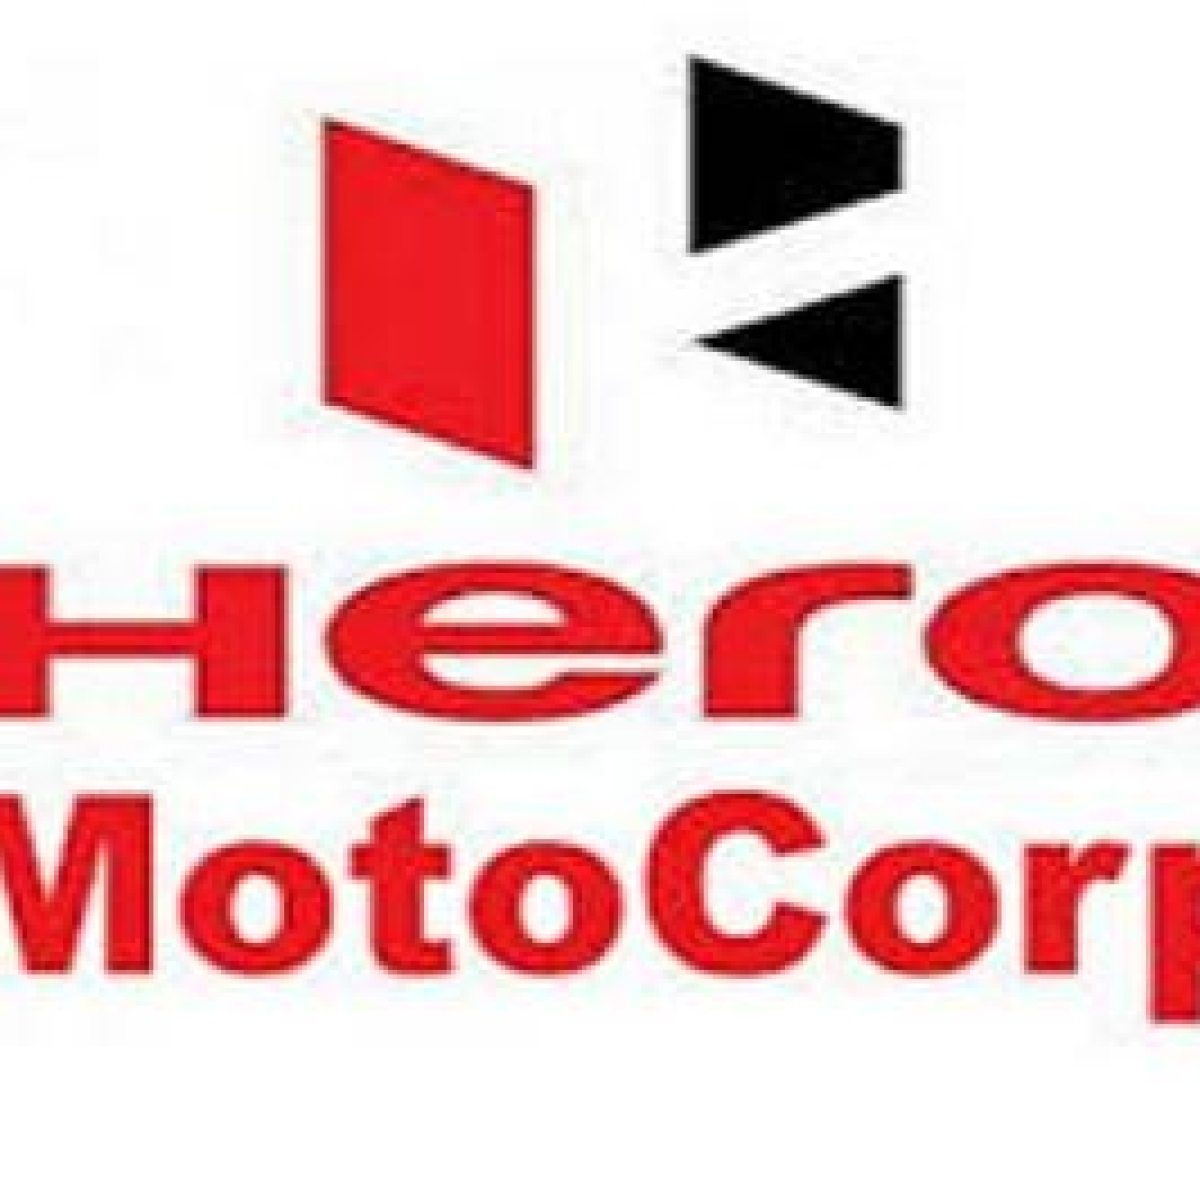 Hero Moto raises prices of two-wheelers by up to 1%